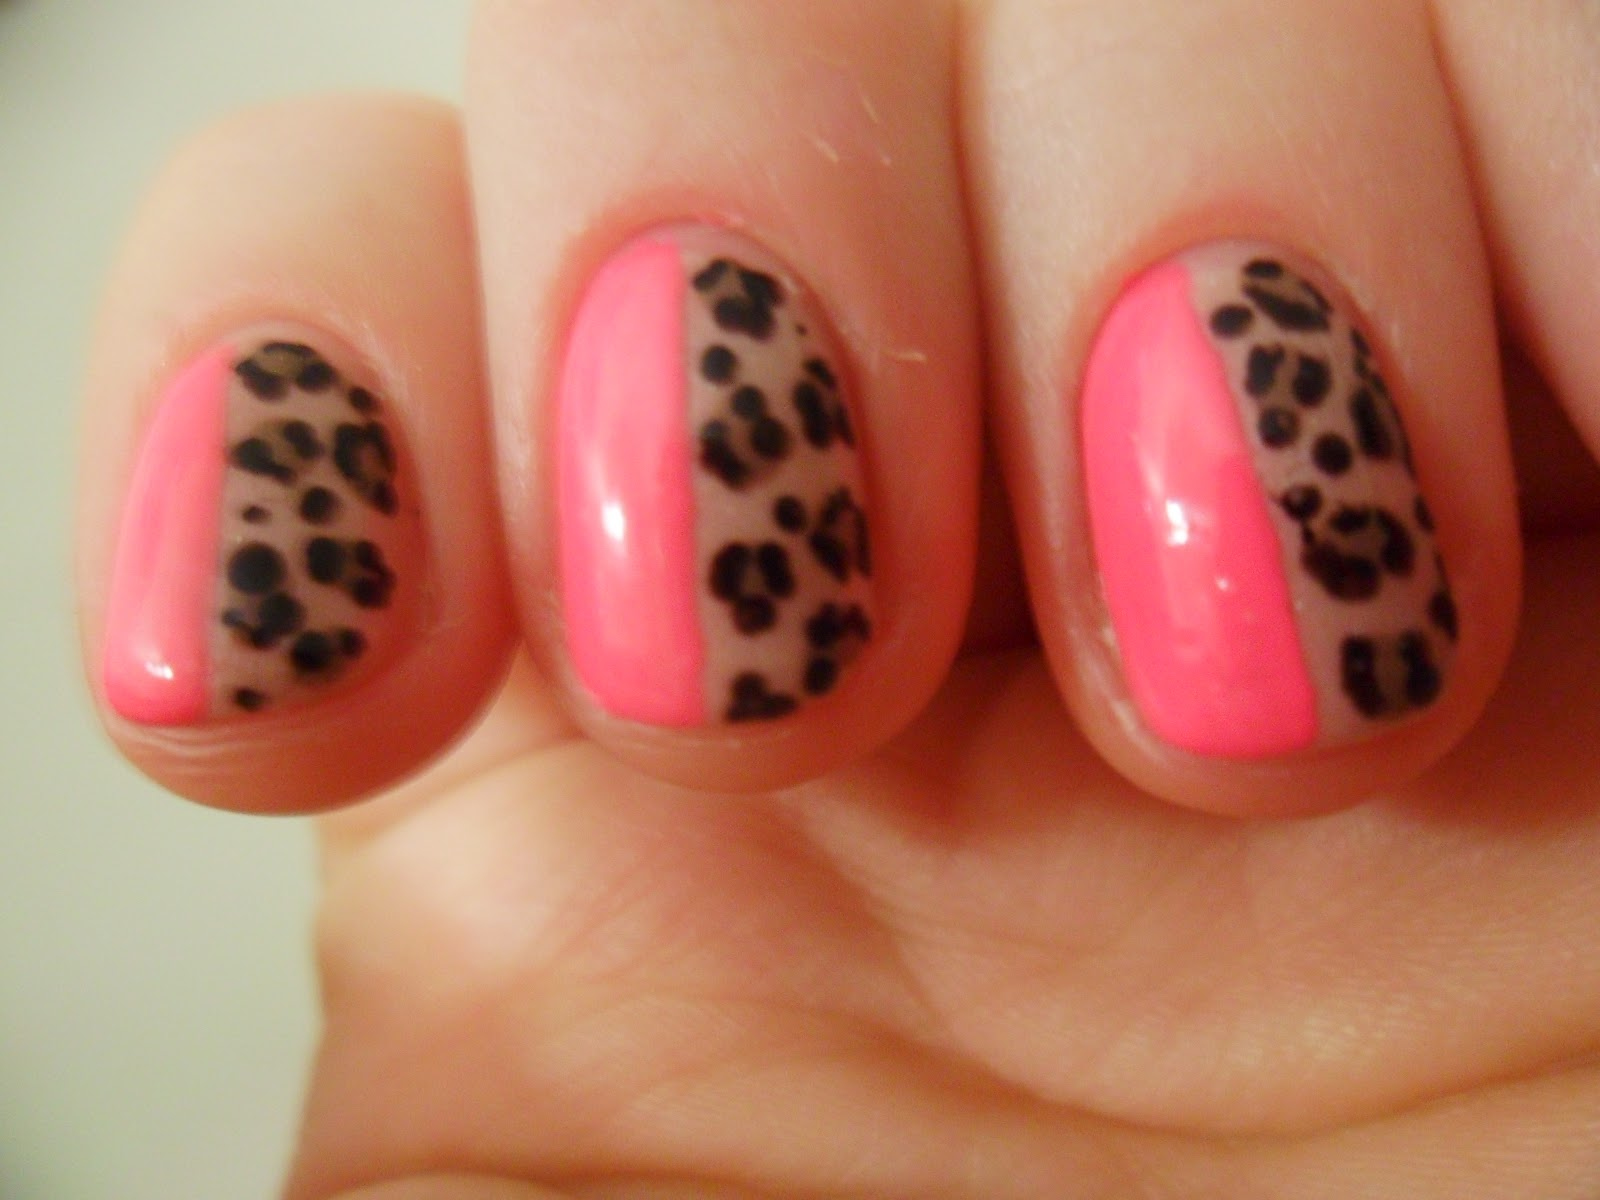 Nailsalicious- Small canvas, Big ideas: Pink Friday-Gel manicure